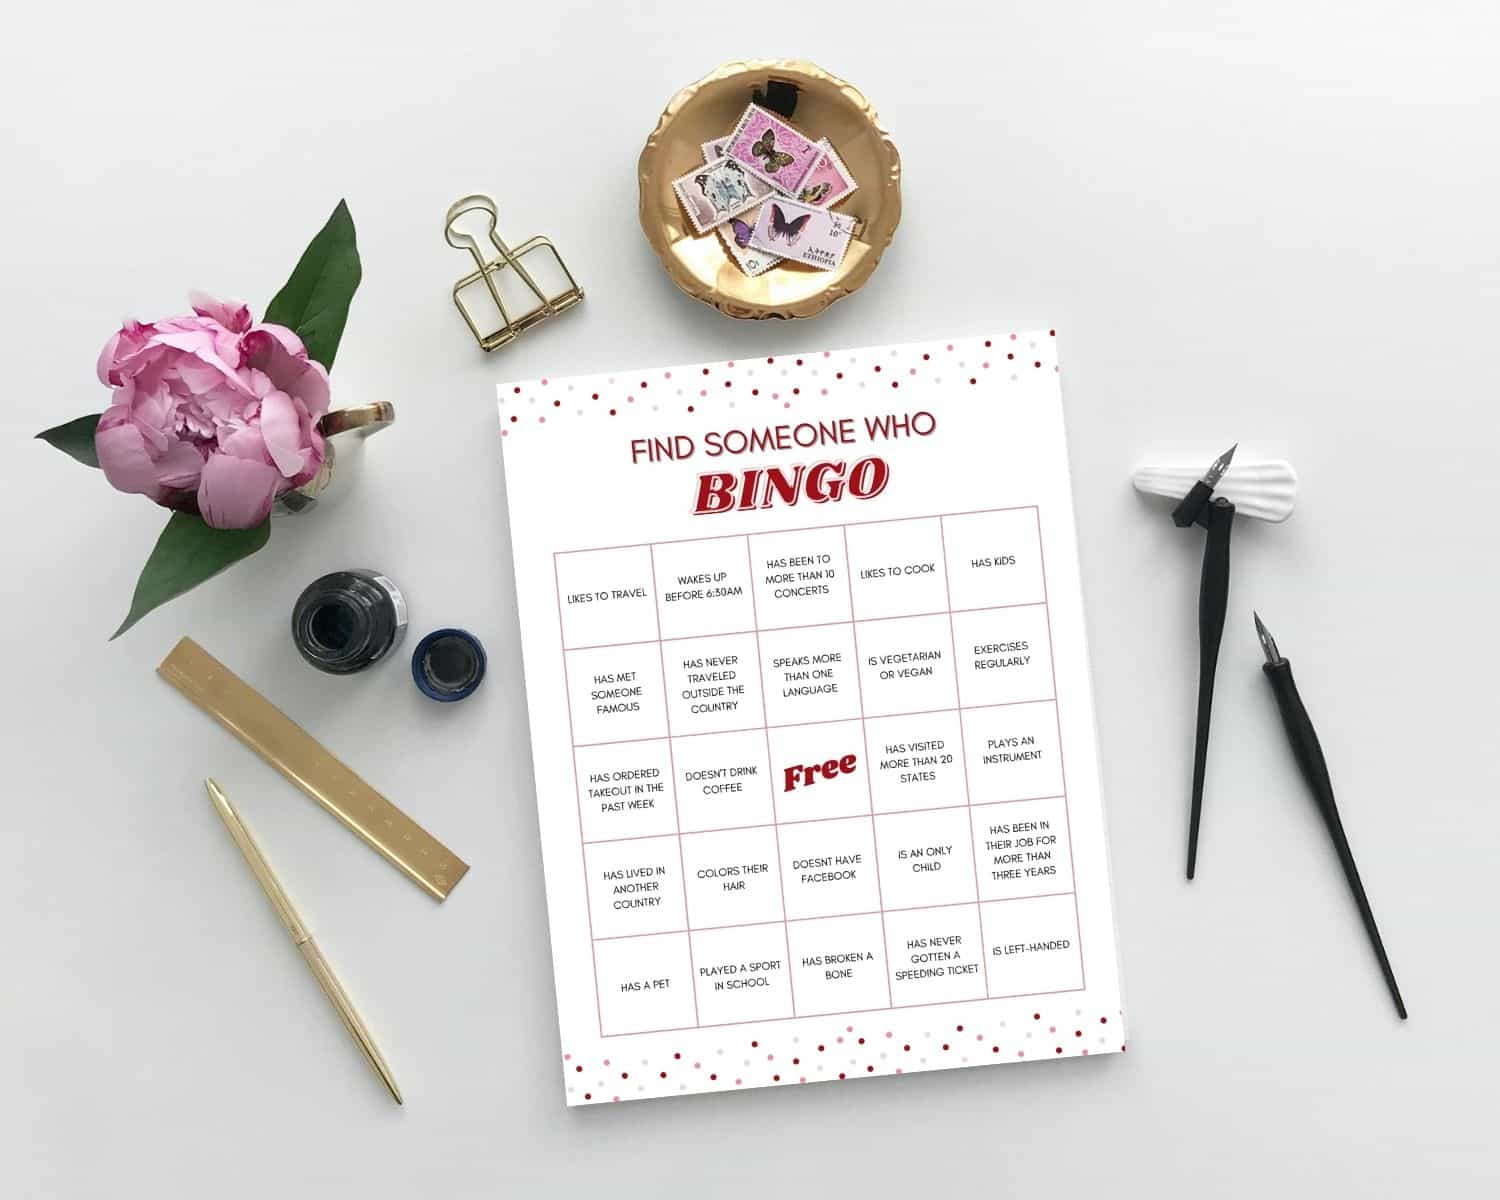 Icebreaker Bingo sits on a desk next to some flowers and clips